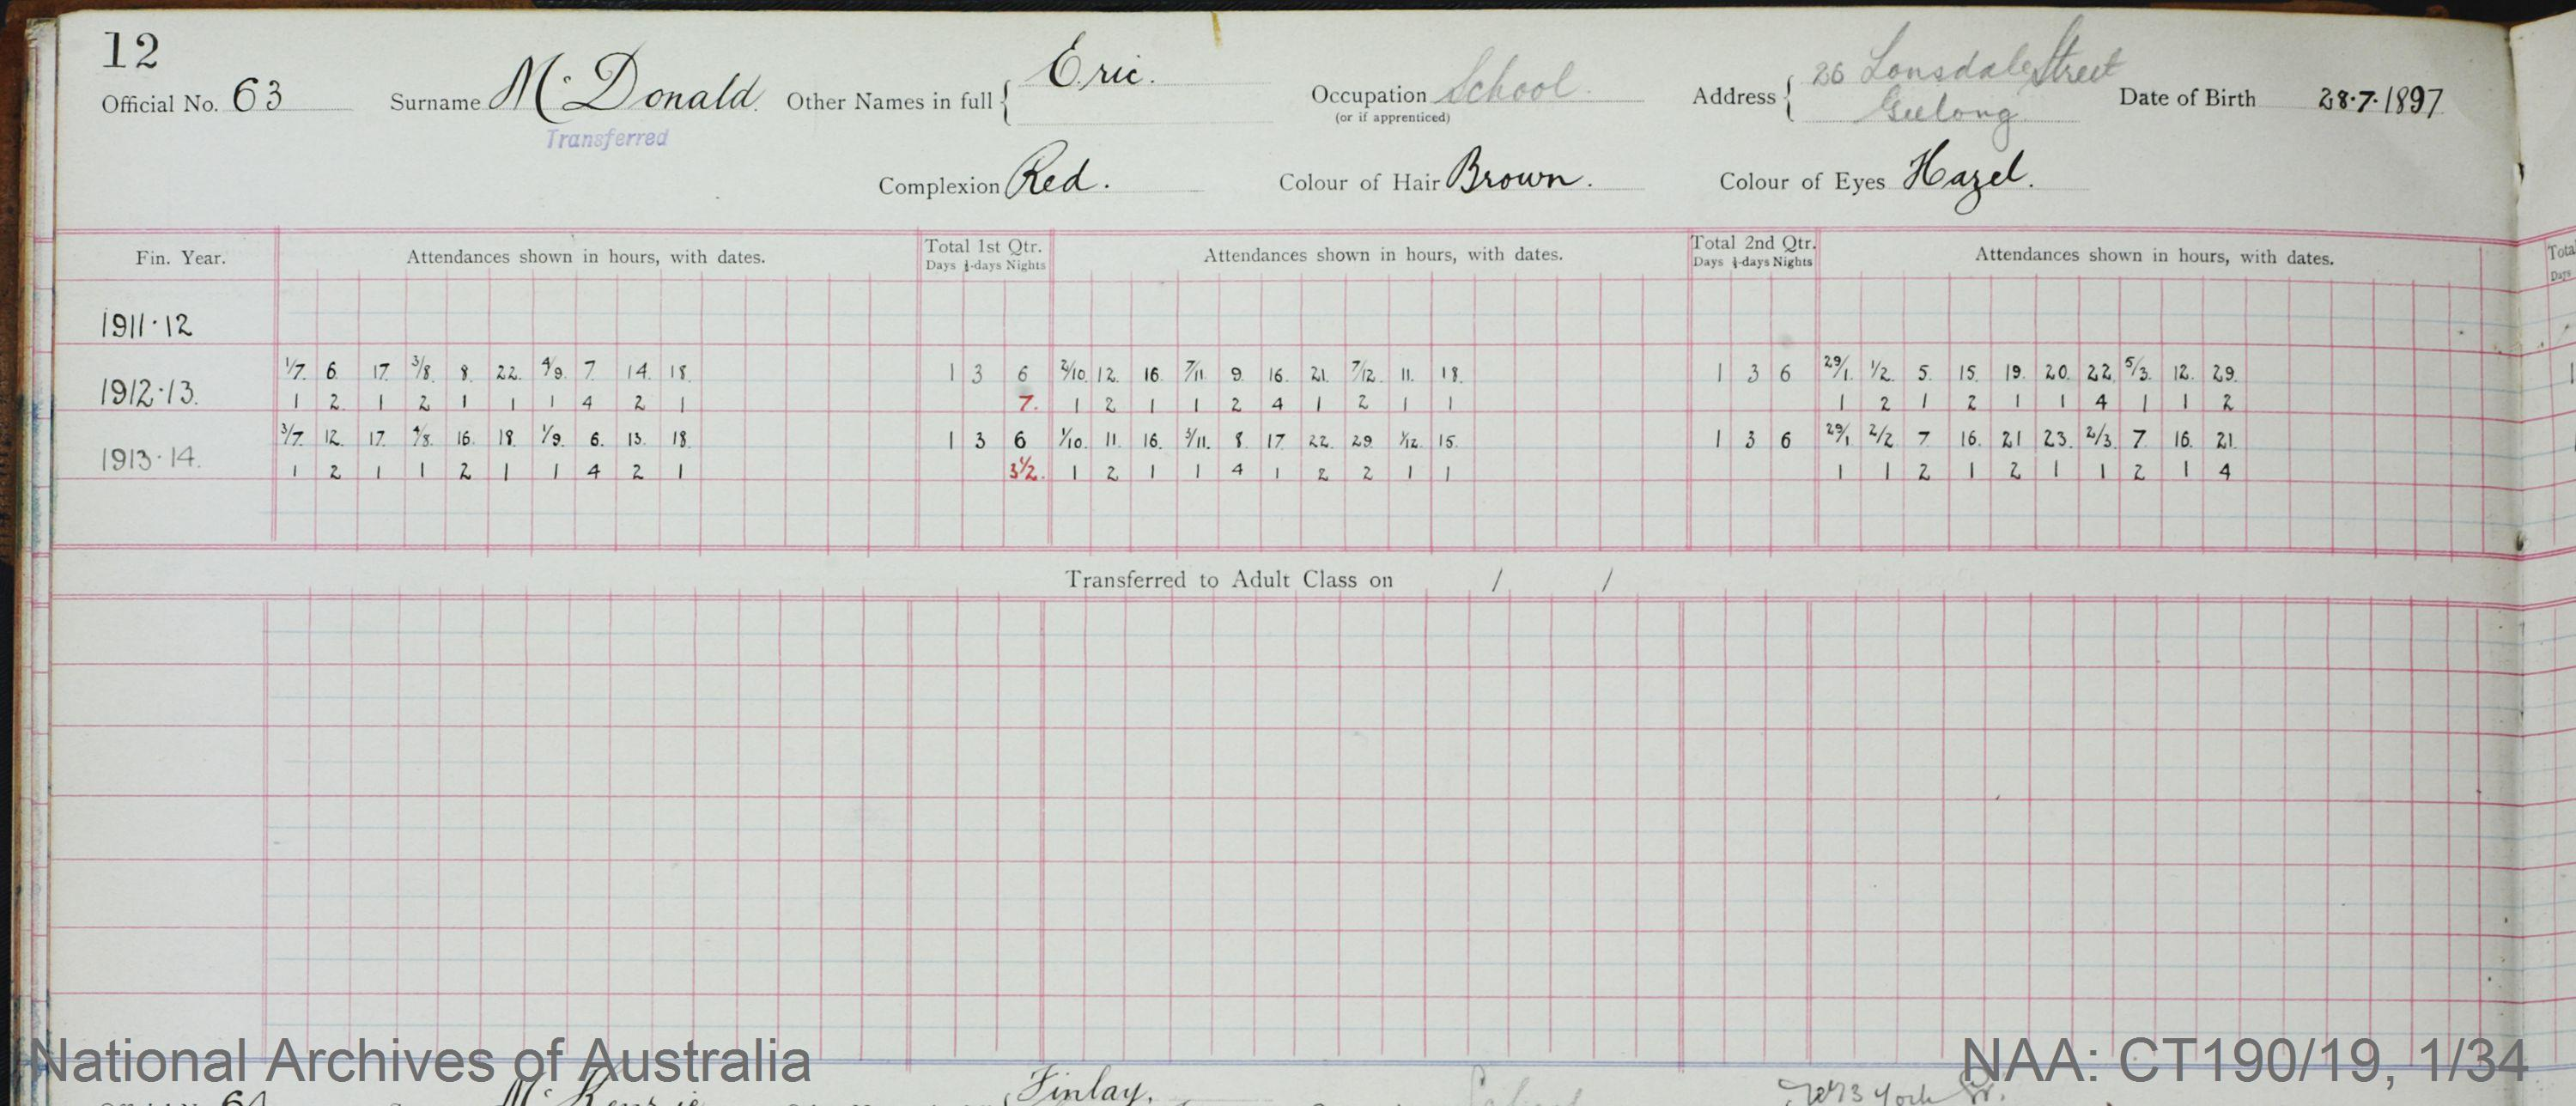 SURNAME - McDONALD;  GIVEN NAME(S) - Eric;  OFFICIAL NUMBER - 63;  DATE OF BIRTH - 28 July 1897;  PLACE OF BIRTH - [Unknown];  NEXT OF KIN - [Unknown] ;  SERVICE/STATION - Geelong;  REGISTRATION DATE - 31 January 1911